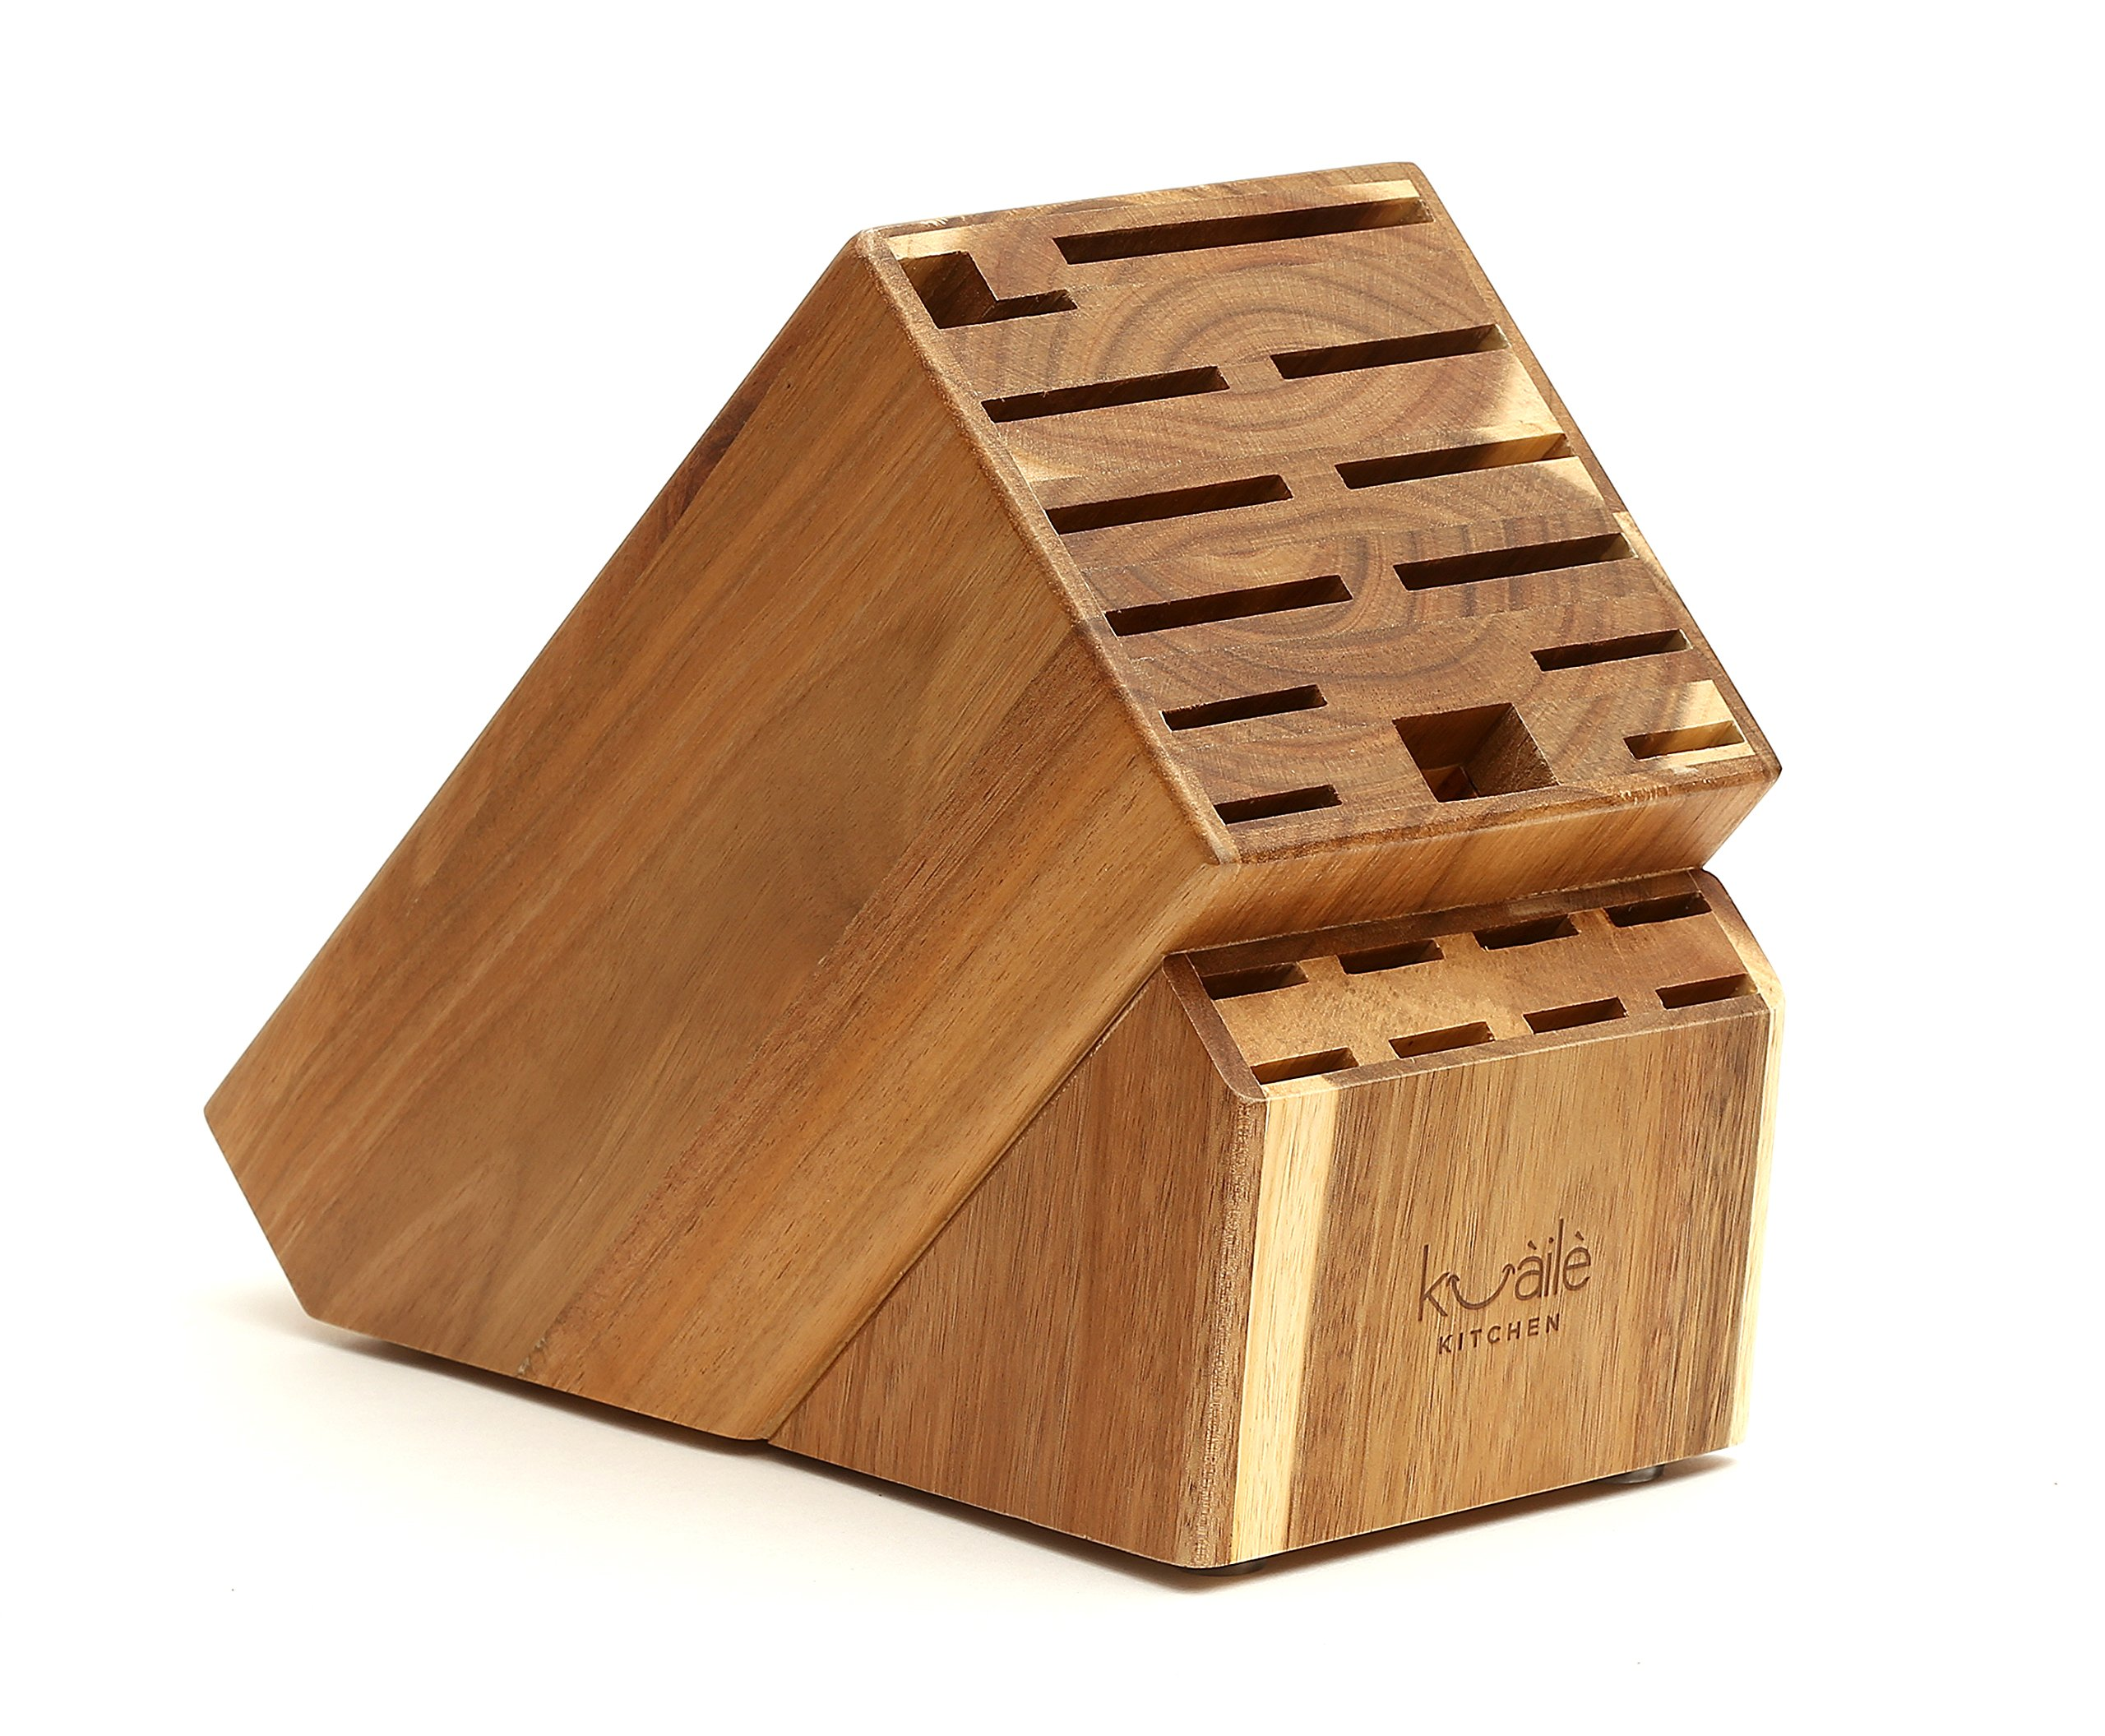 21 Slot Universal Solid Wood Kitchen Knife Storage Block (Acacia Wood) Without Knives